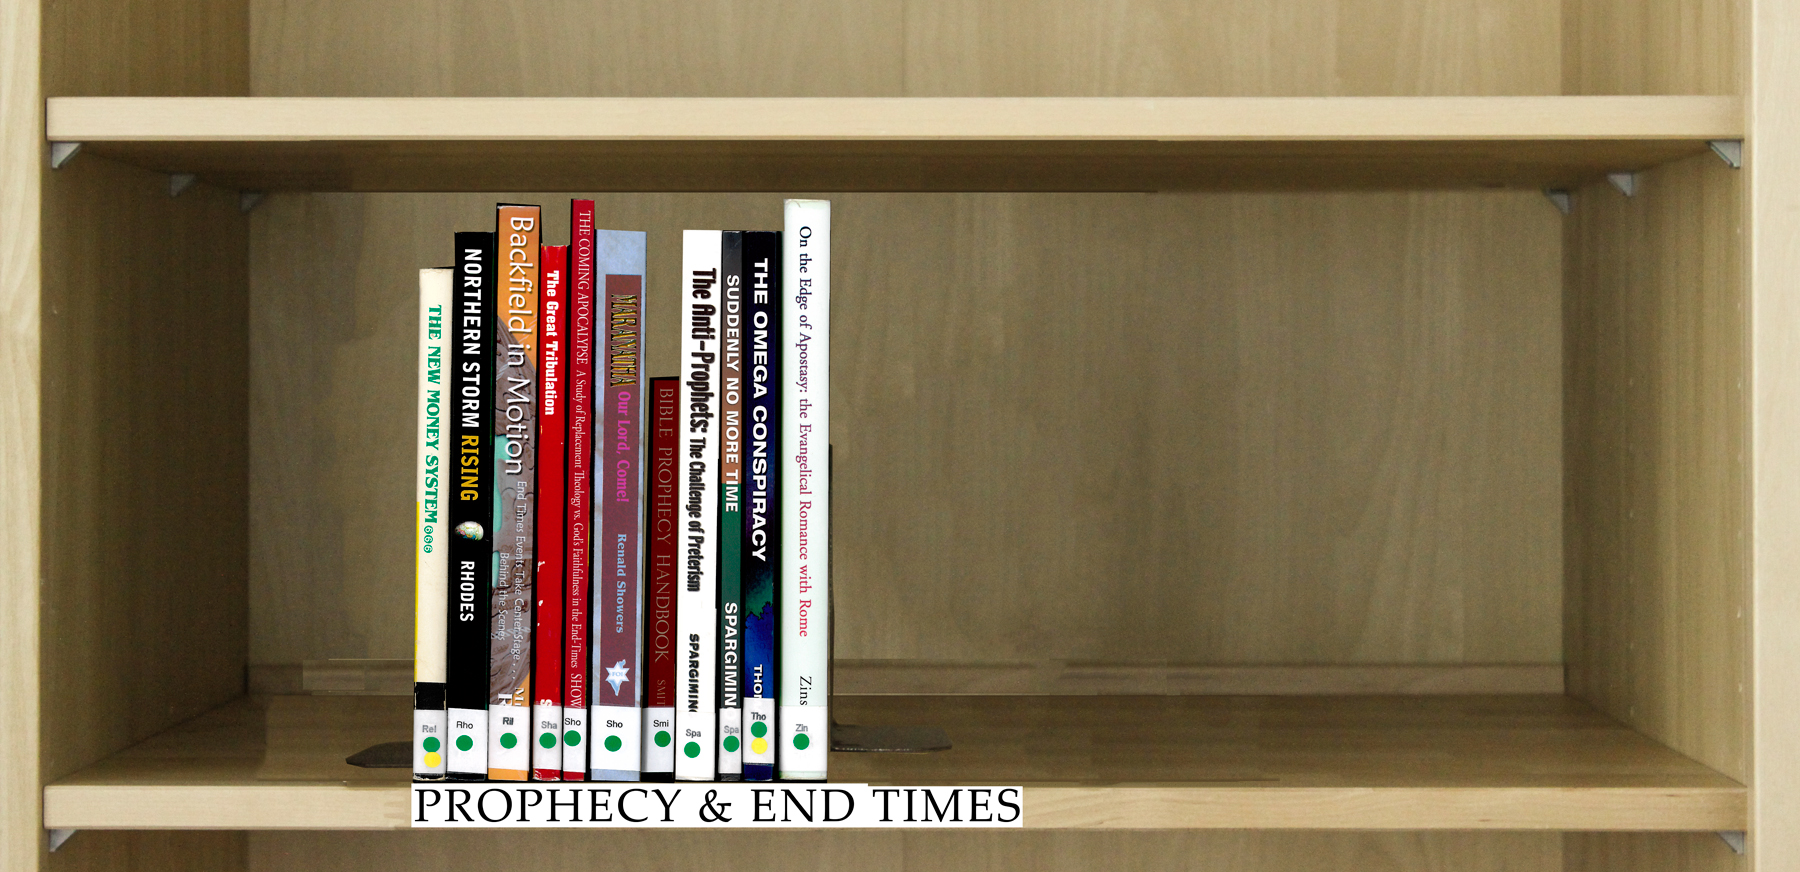 Index of Books Under the Category Prophecy & End Times.